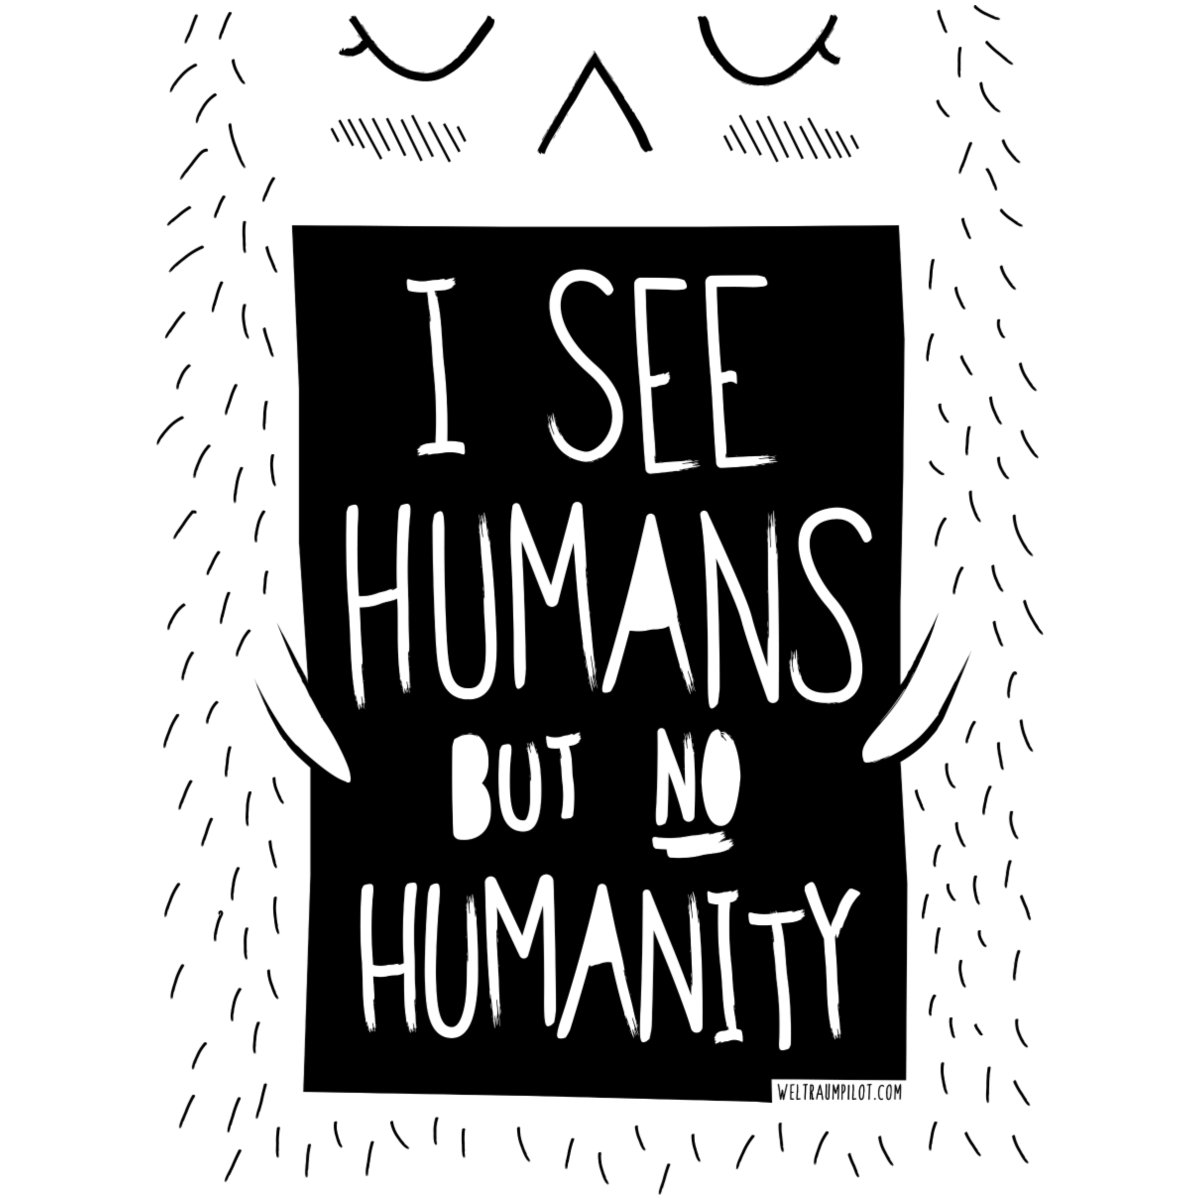 I See Humans But No Humanity